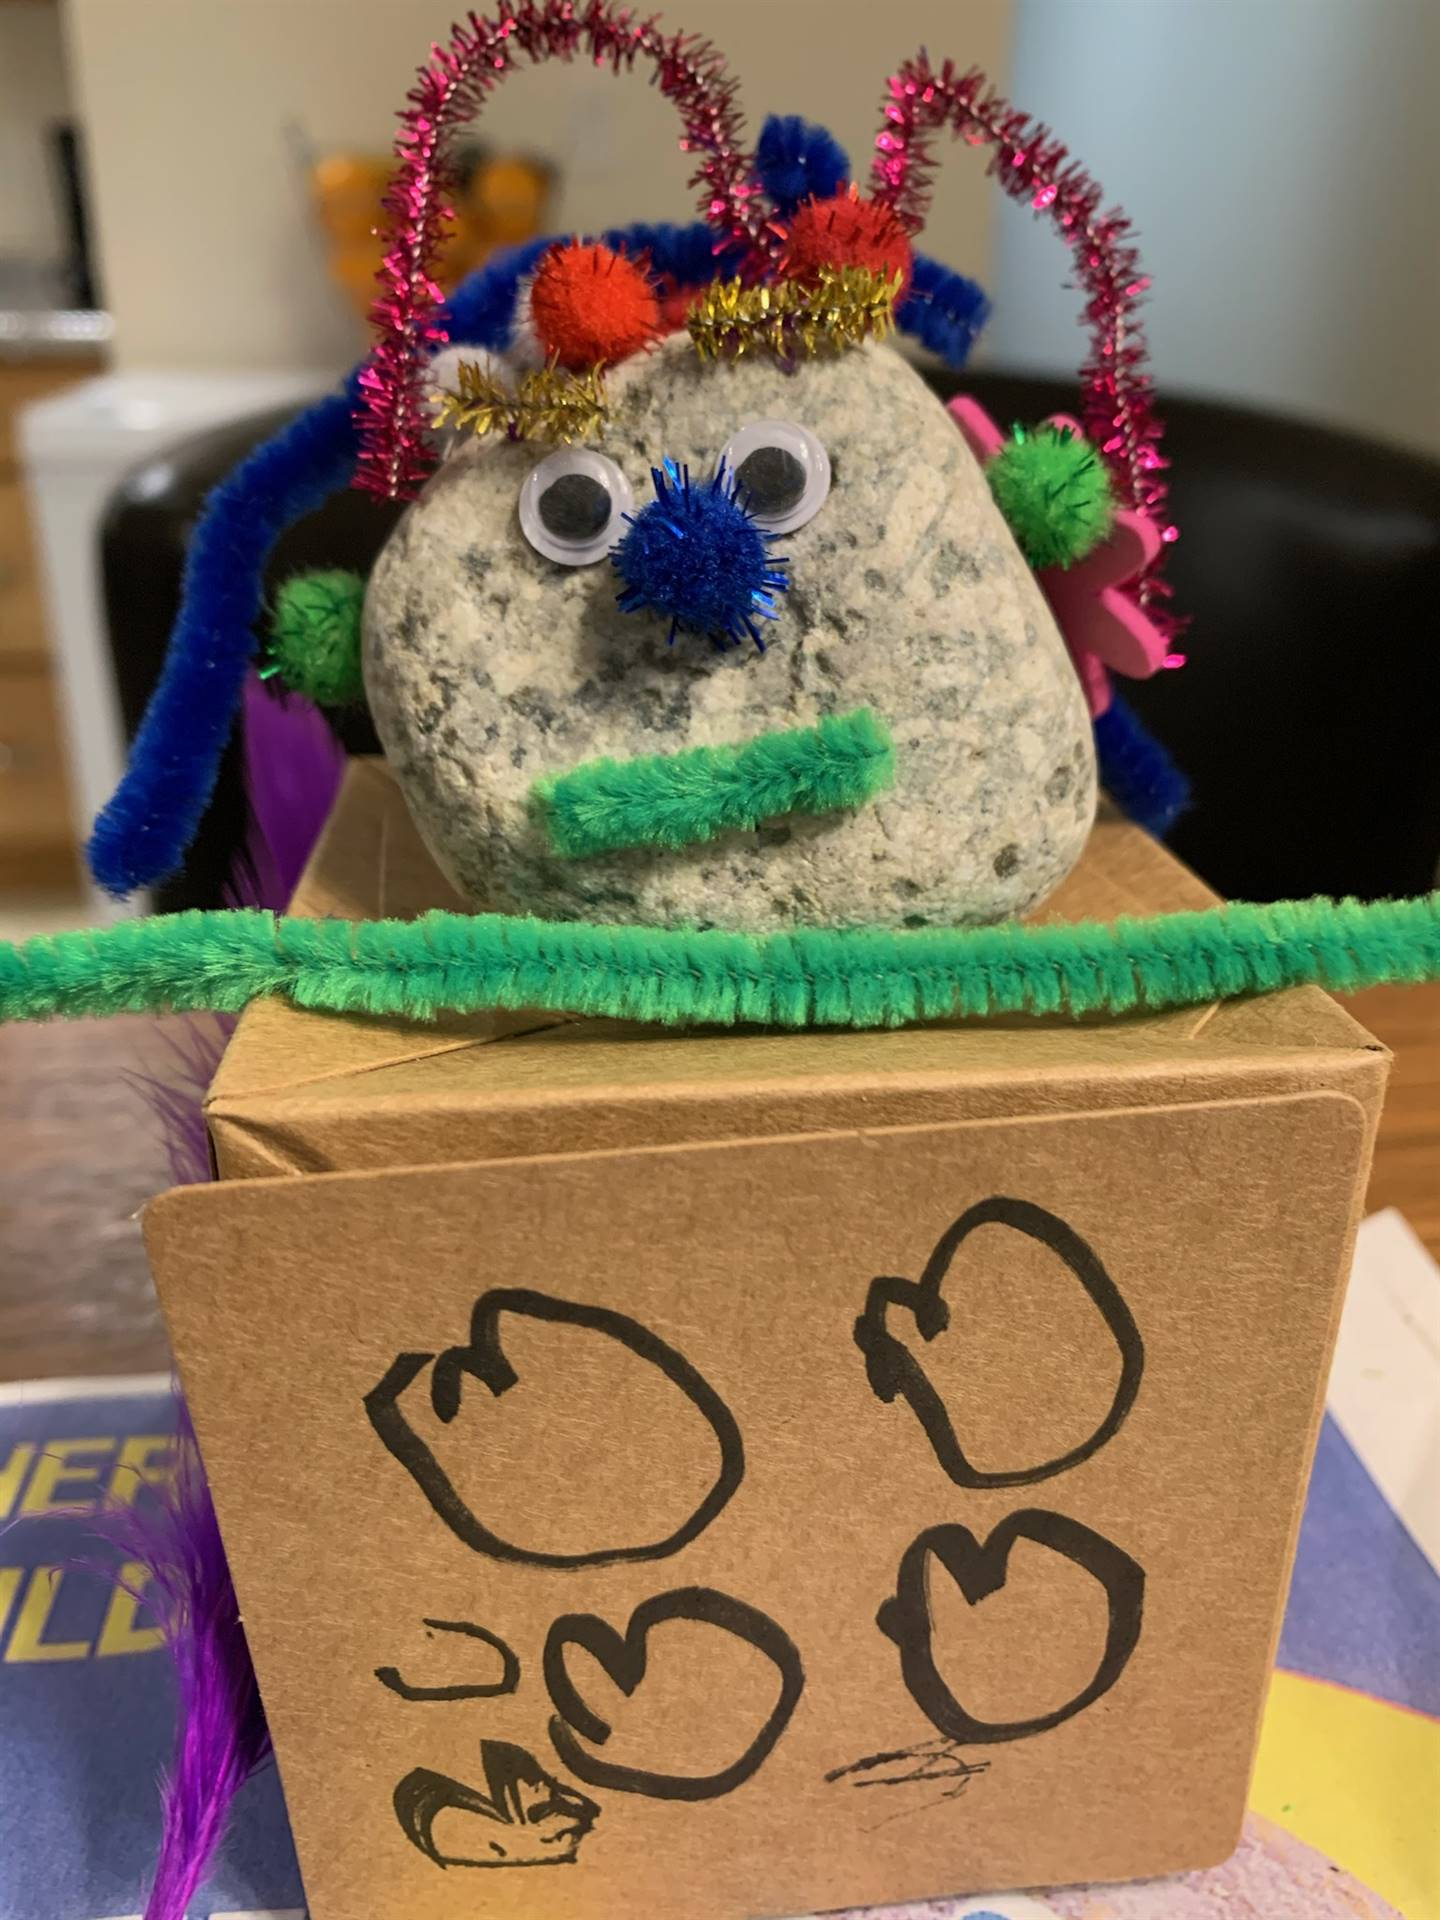 Here we see the pet rock with pipe cleaners and a puff nose.